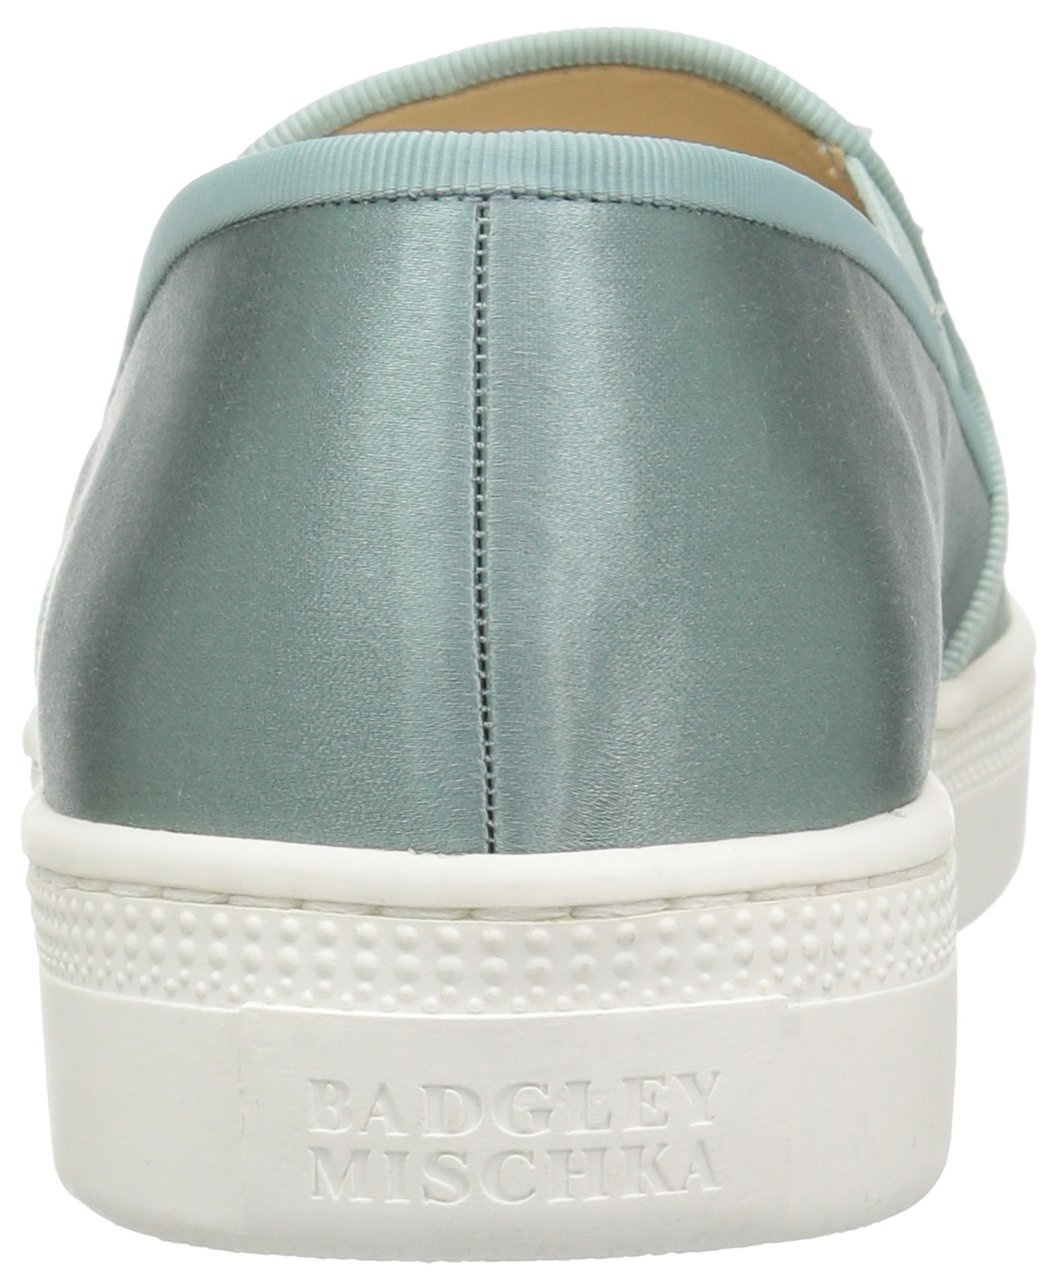 Badgley Mischka Women's Barre Sneaker B01K0X3968 10 B(M) US|Blue Radiance